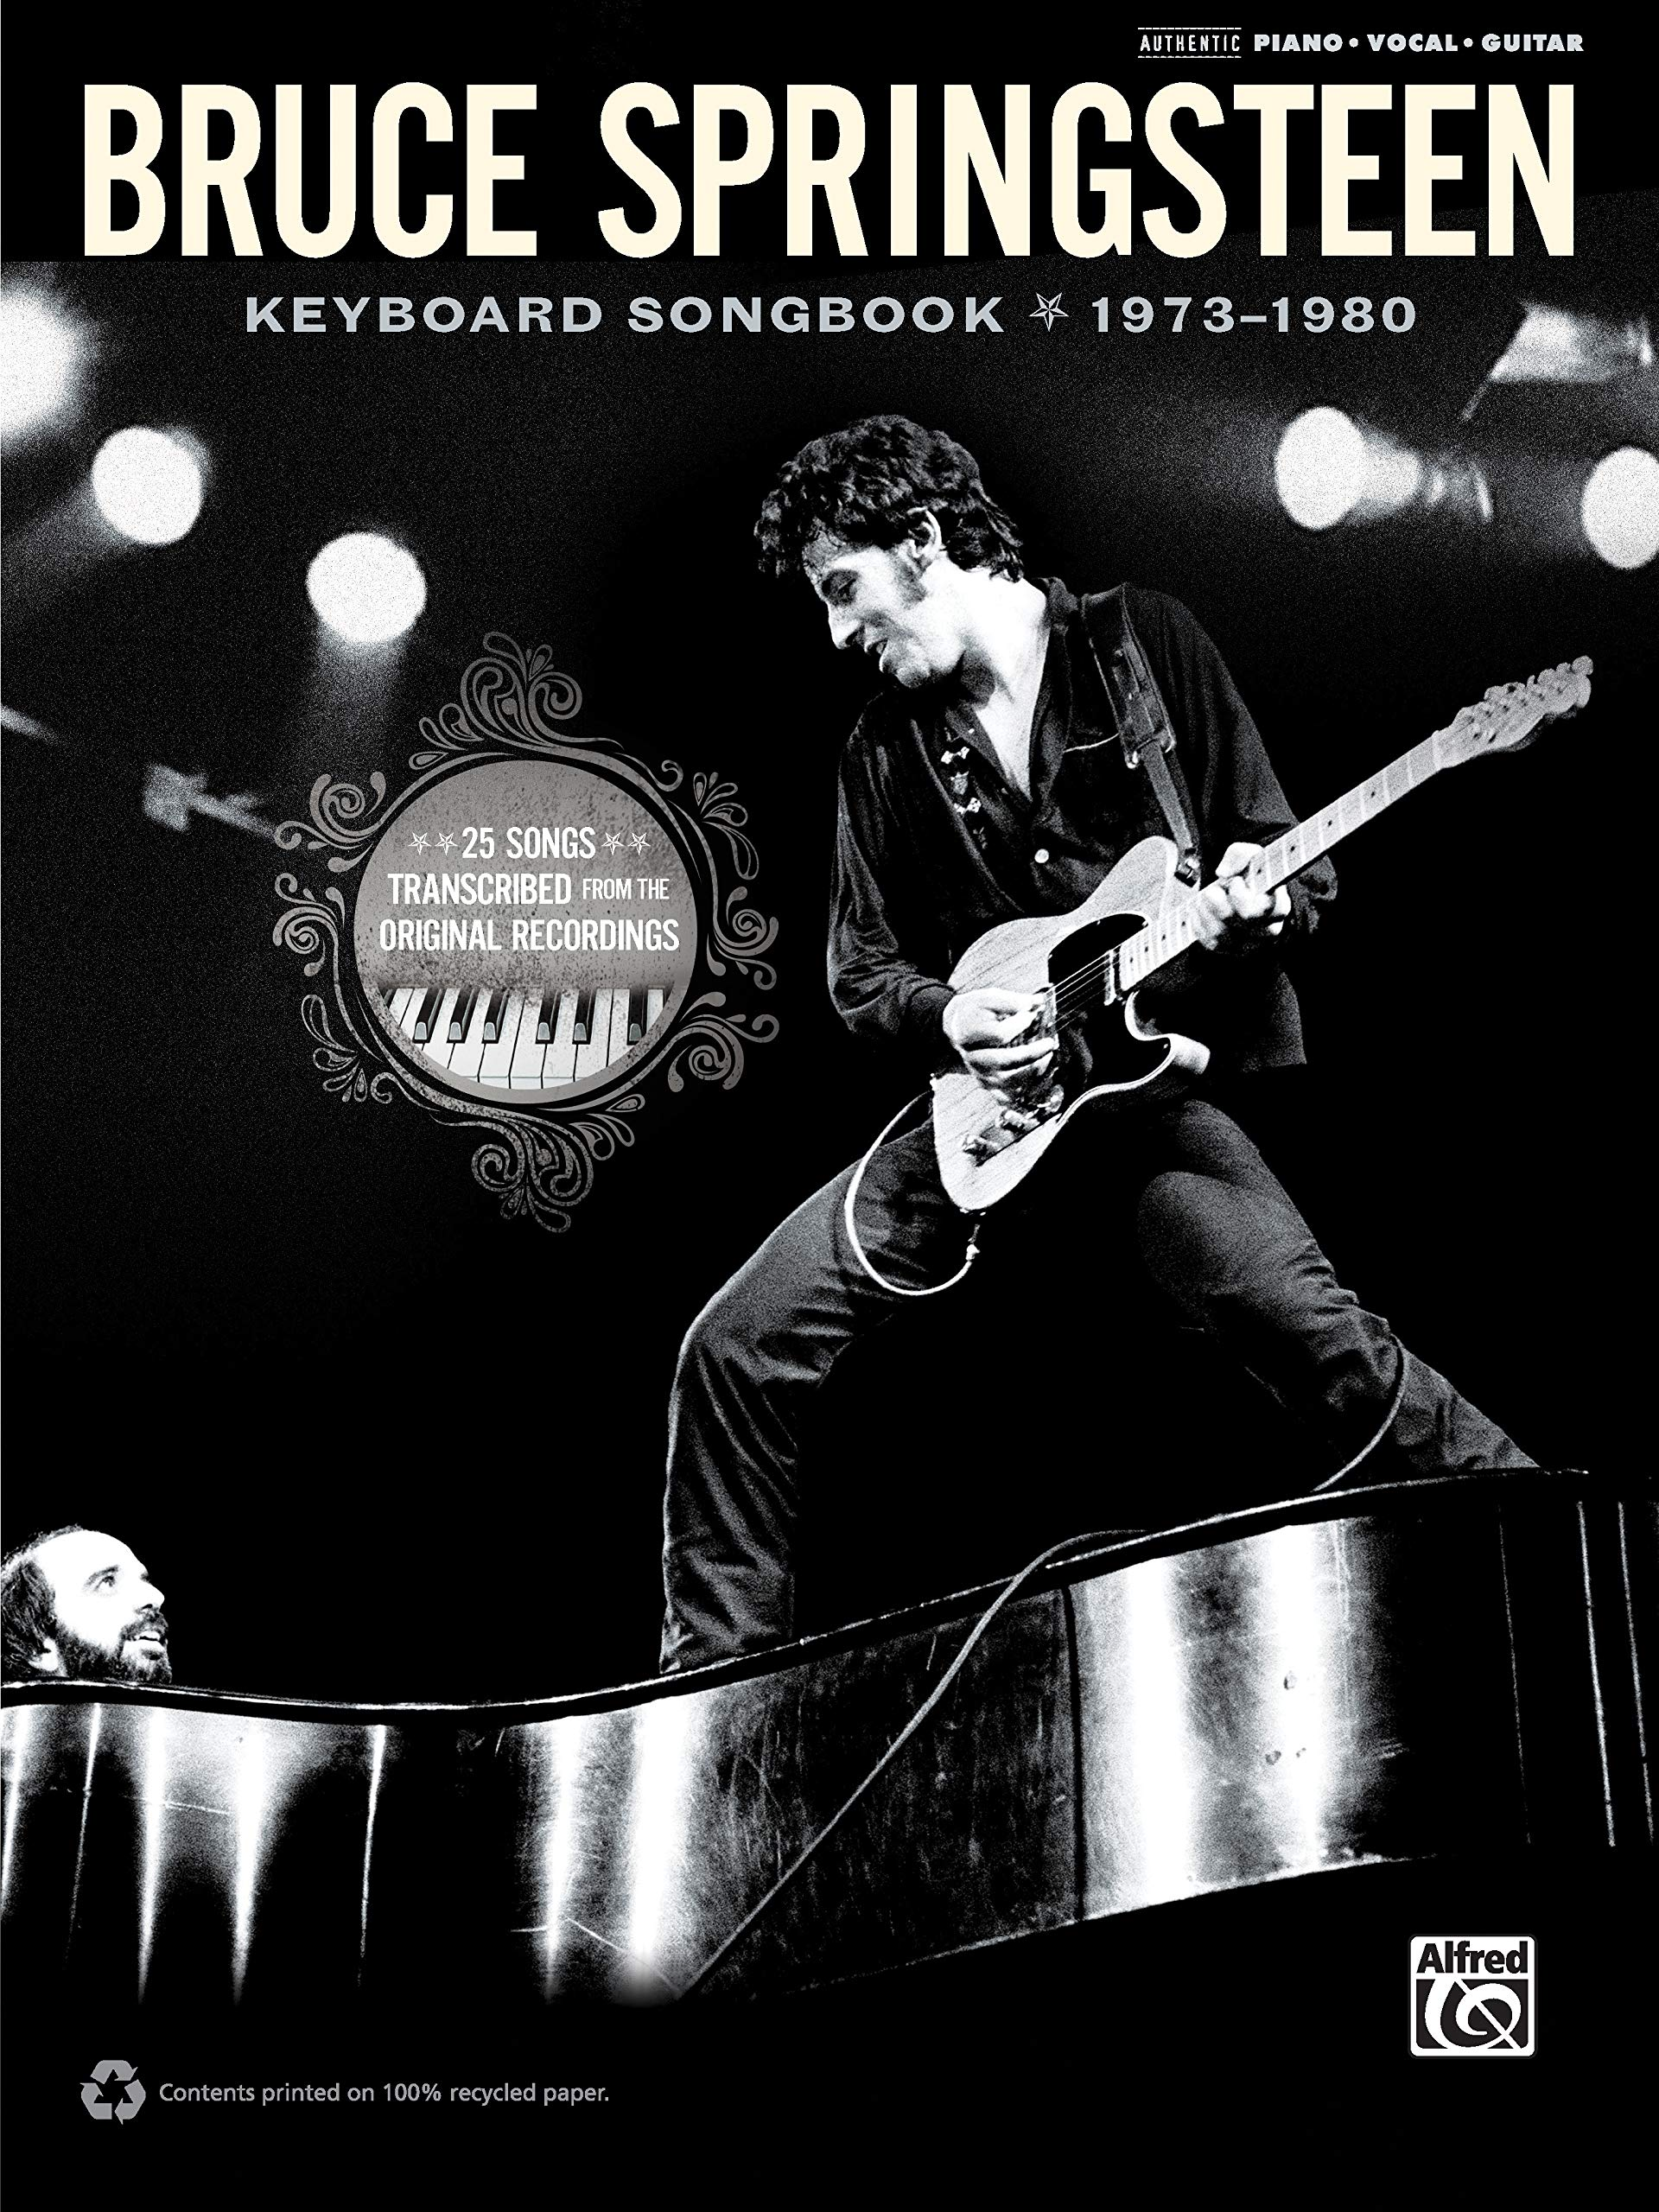 Bruce Springsteen -- Keyboard Songbook 1973-1980: Piano/Vocal ...